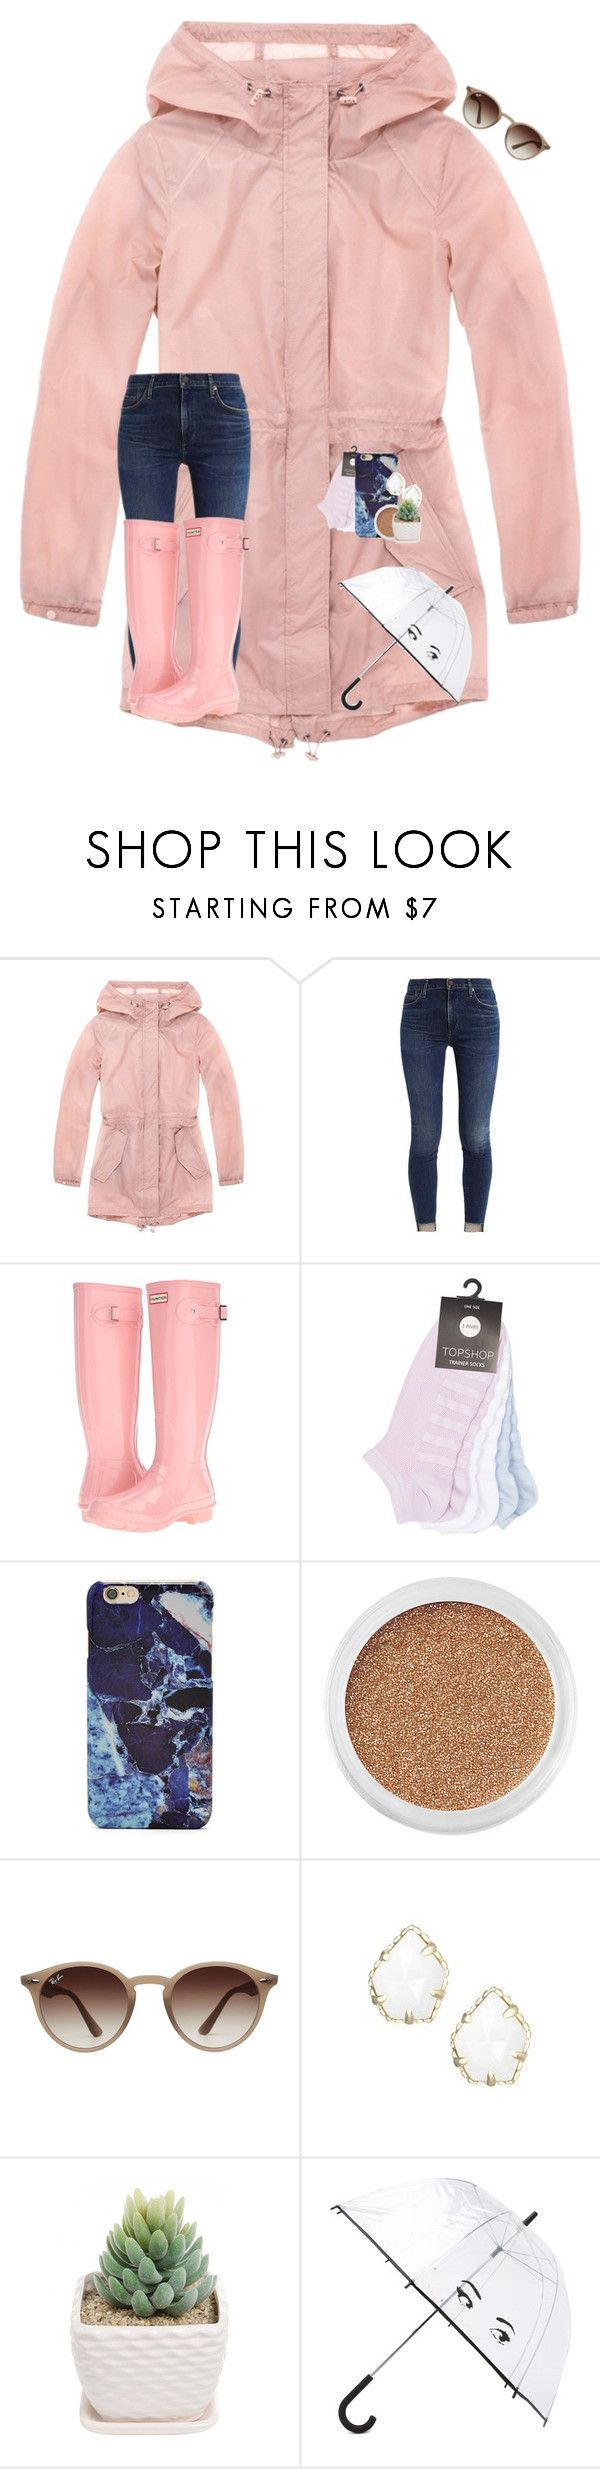 """""""•rain rain go away ☔️•"""" by mackenzielacy814 on Polyvore featuring Andrew Marc, Hunter, Topshop, Forever 21, Bare Escentuals, Ray-Ban, Kendra Scott, Kate Spade and mrlloves"""